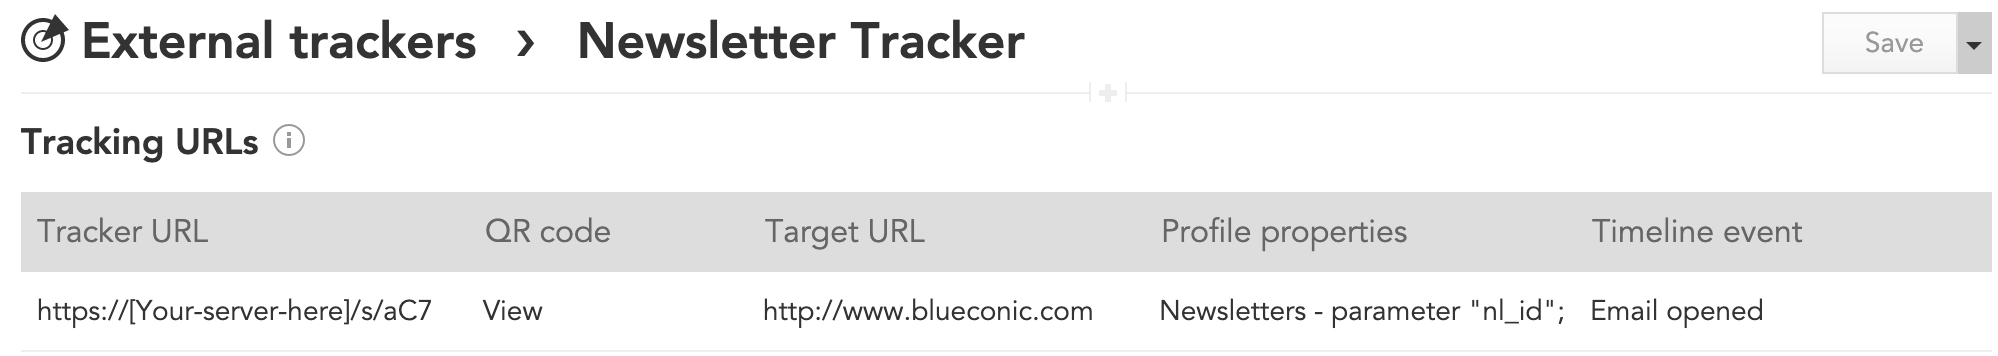 Generate-tracking-URL.png